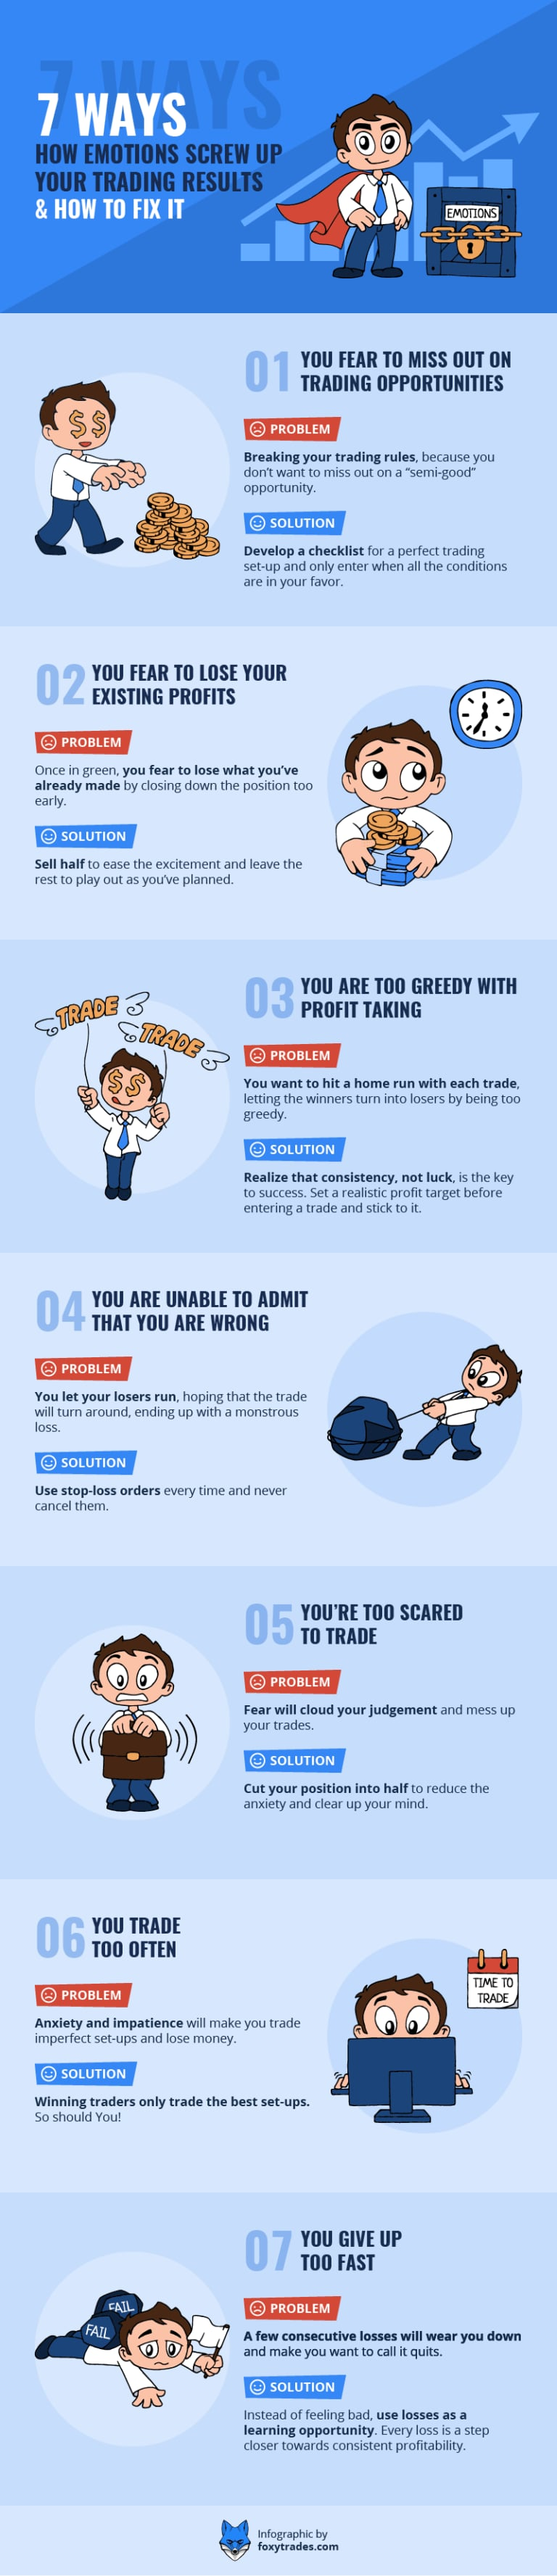 How Emotions Screw Up Your Trading Results Infographic